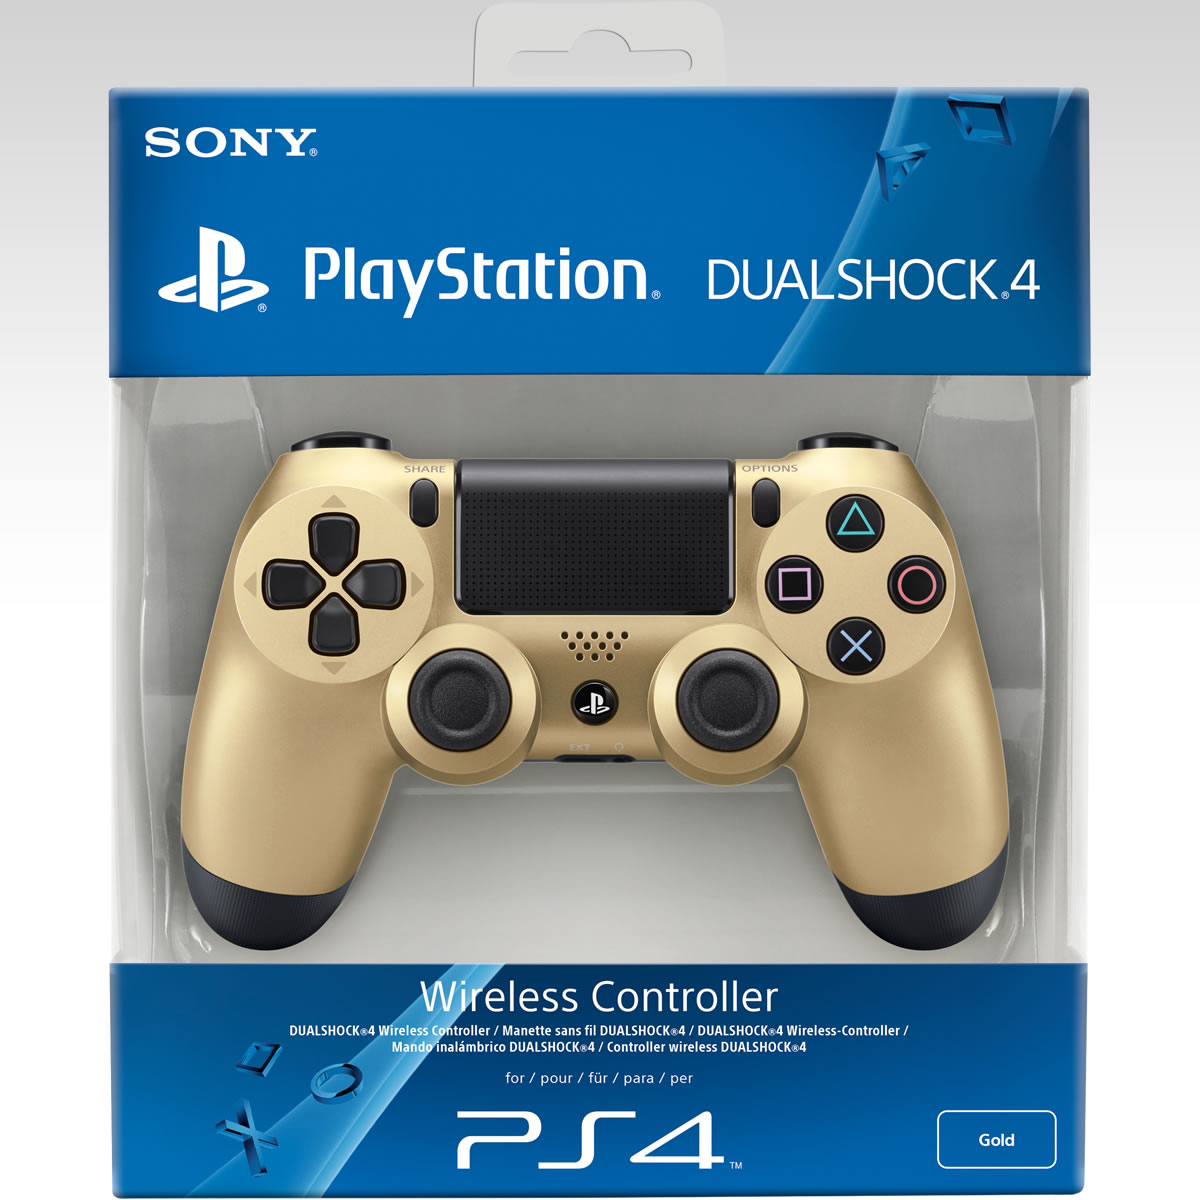 SONY OFFICIAL WIRELESS CONTROLLER DUALSHOCK 4 Gold Collector's Edition - SONY ������� �������� ����������� DUALSHOCK 4 ����� ���������� ������ (PS4)